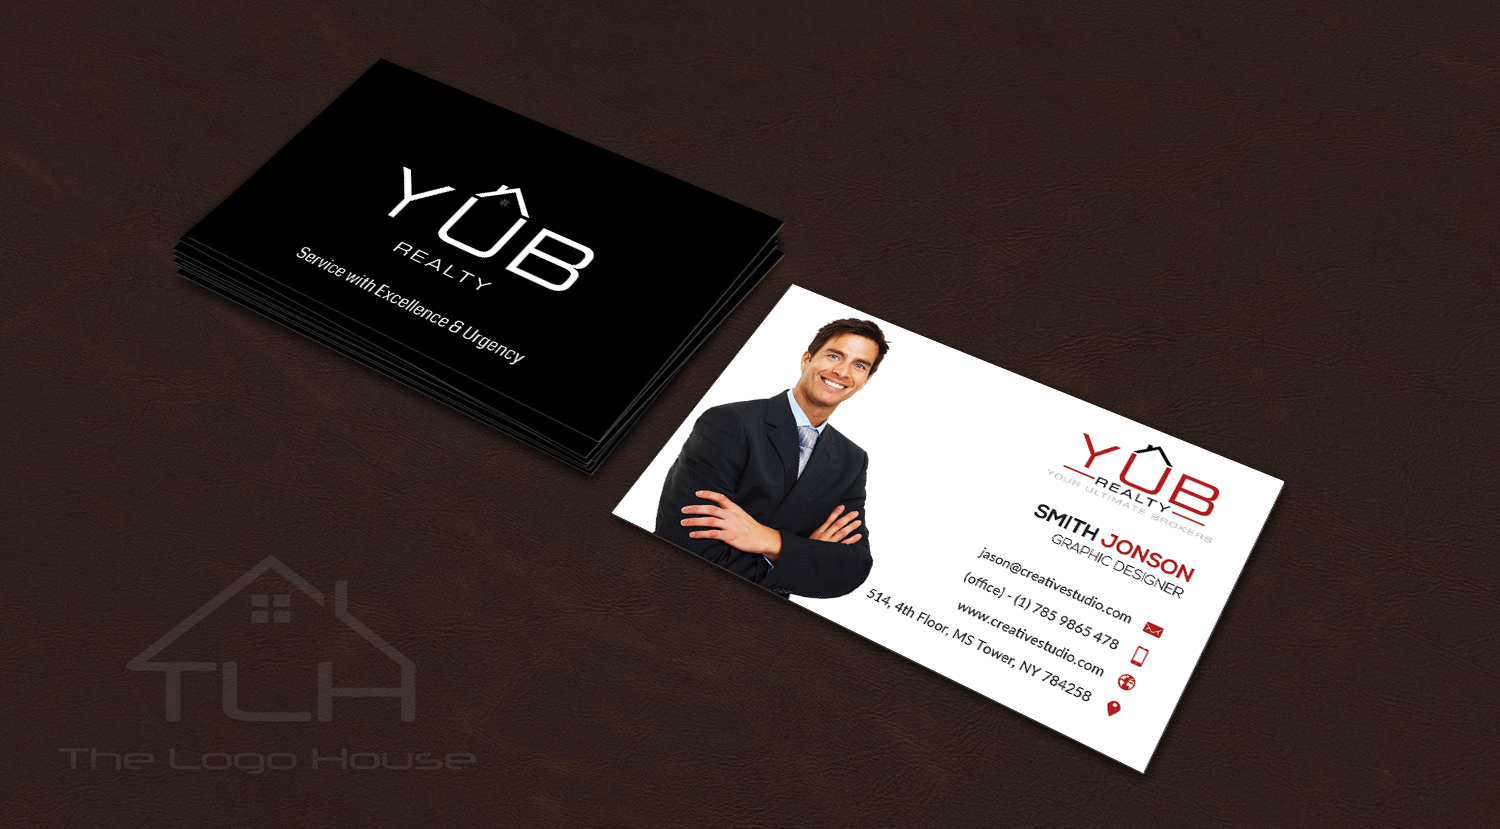 Upmarket elegant real estate agent business card design for red business card design by thelogohouse for red empresario design 16908676 reheart Choice Image